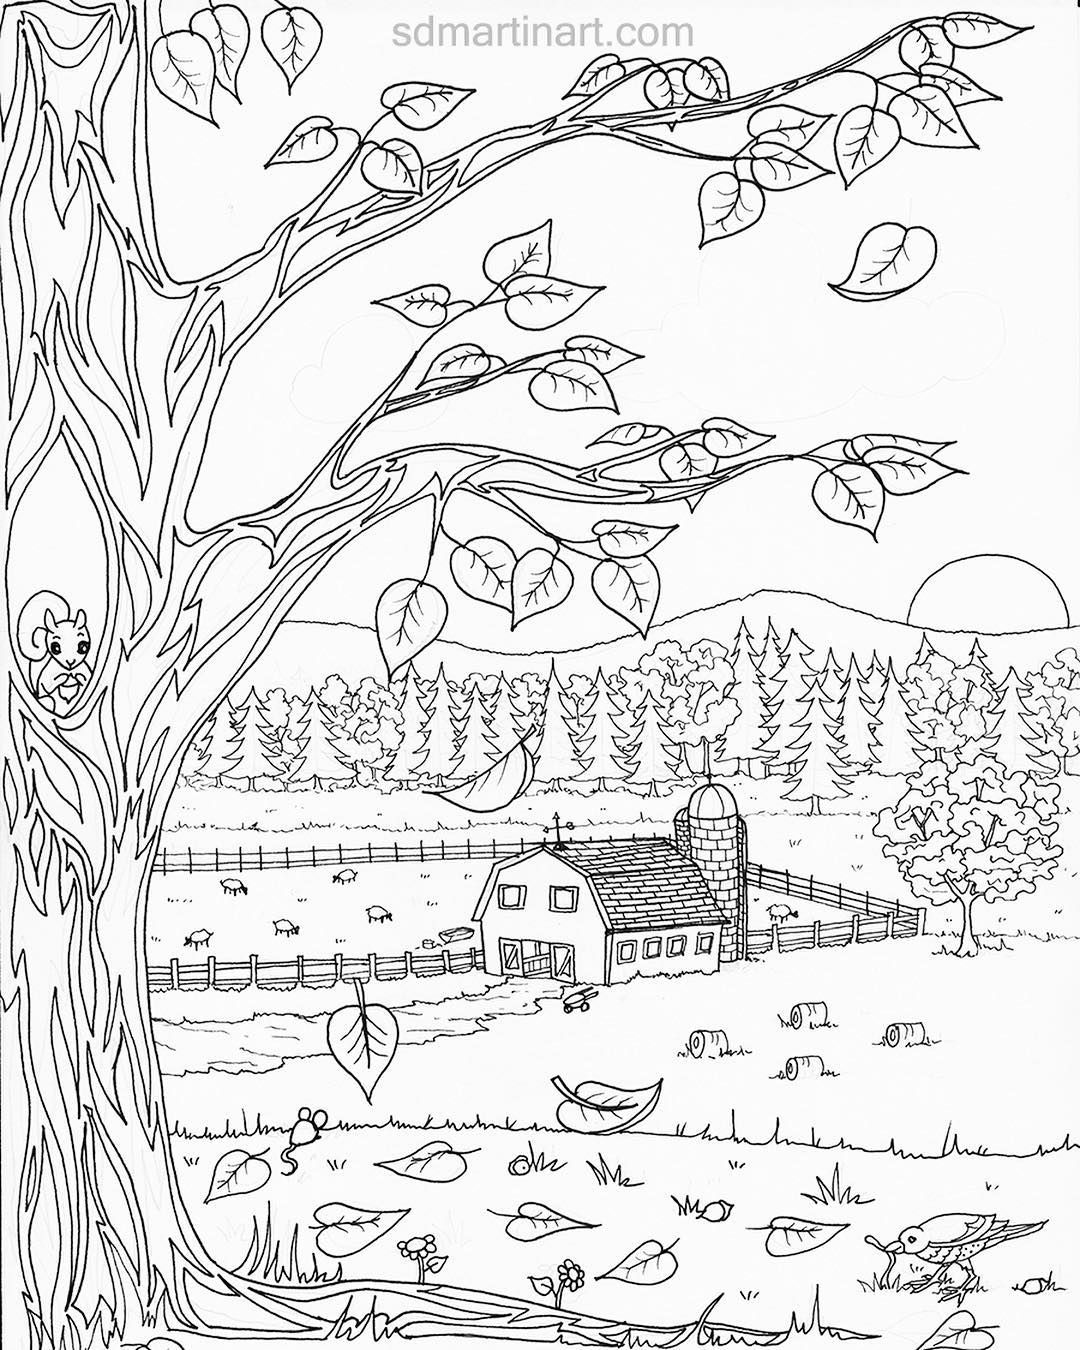 Coloring Page Base Farm Coloring Pages Coloring Pages Fall